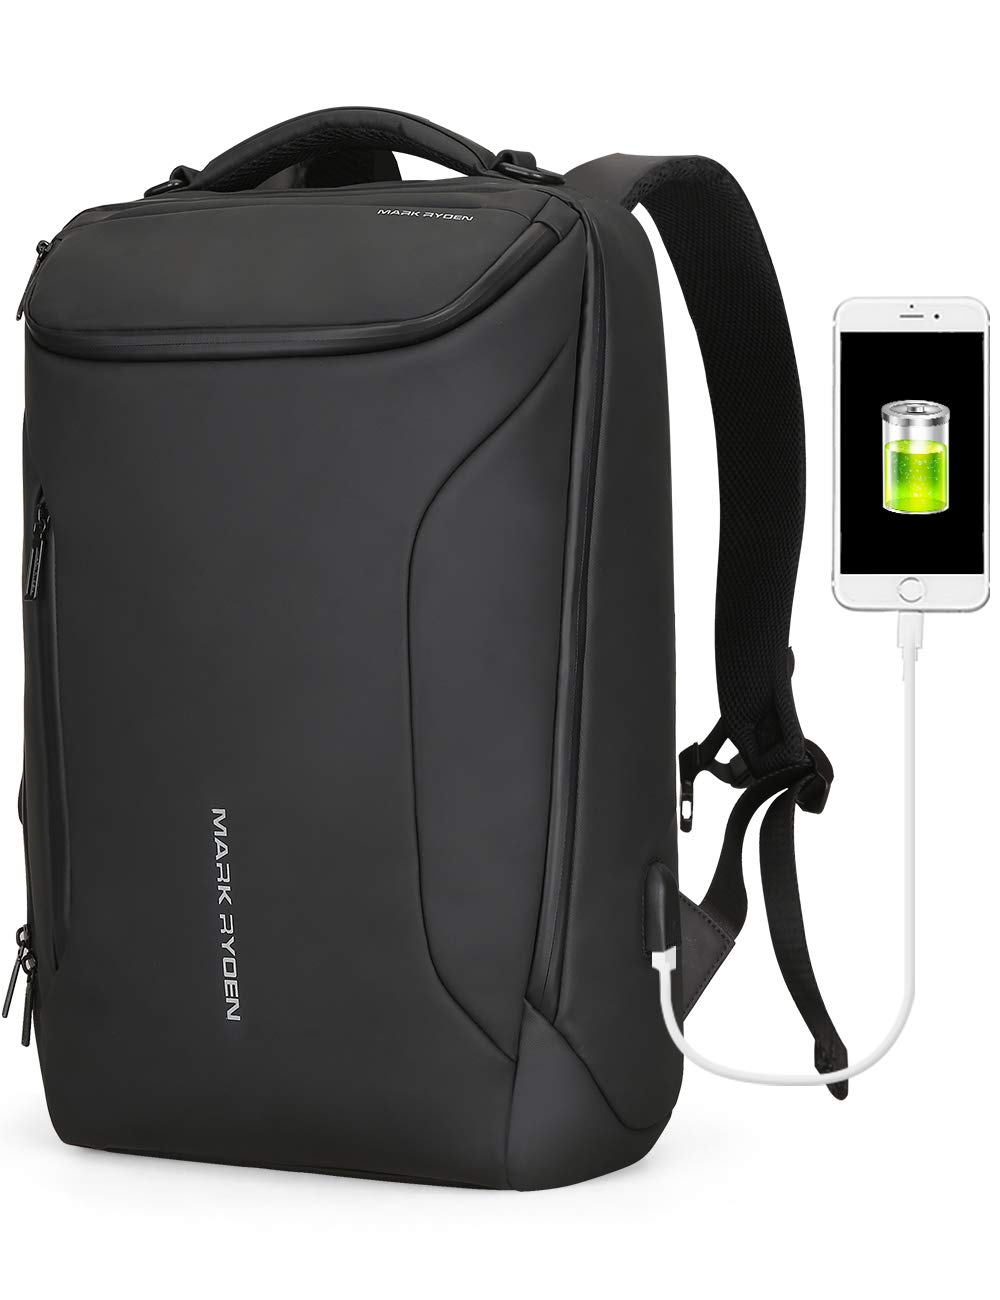 Water-proof Backpack Markryden large-capacity Modern rucksack Business Bags for men with USB Charging Port for School Travel hiking Work Pack Fits 17.3, 15.6 Inch Laptopop (Black (New)) by MARK RYDEN